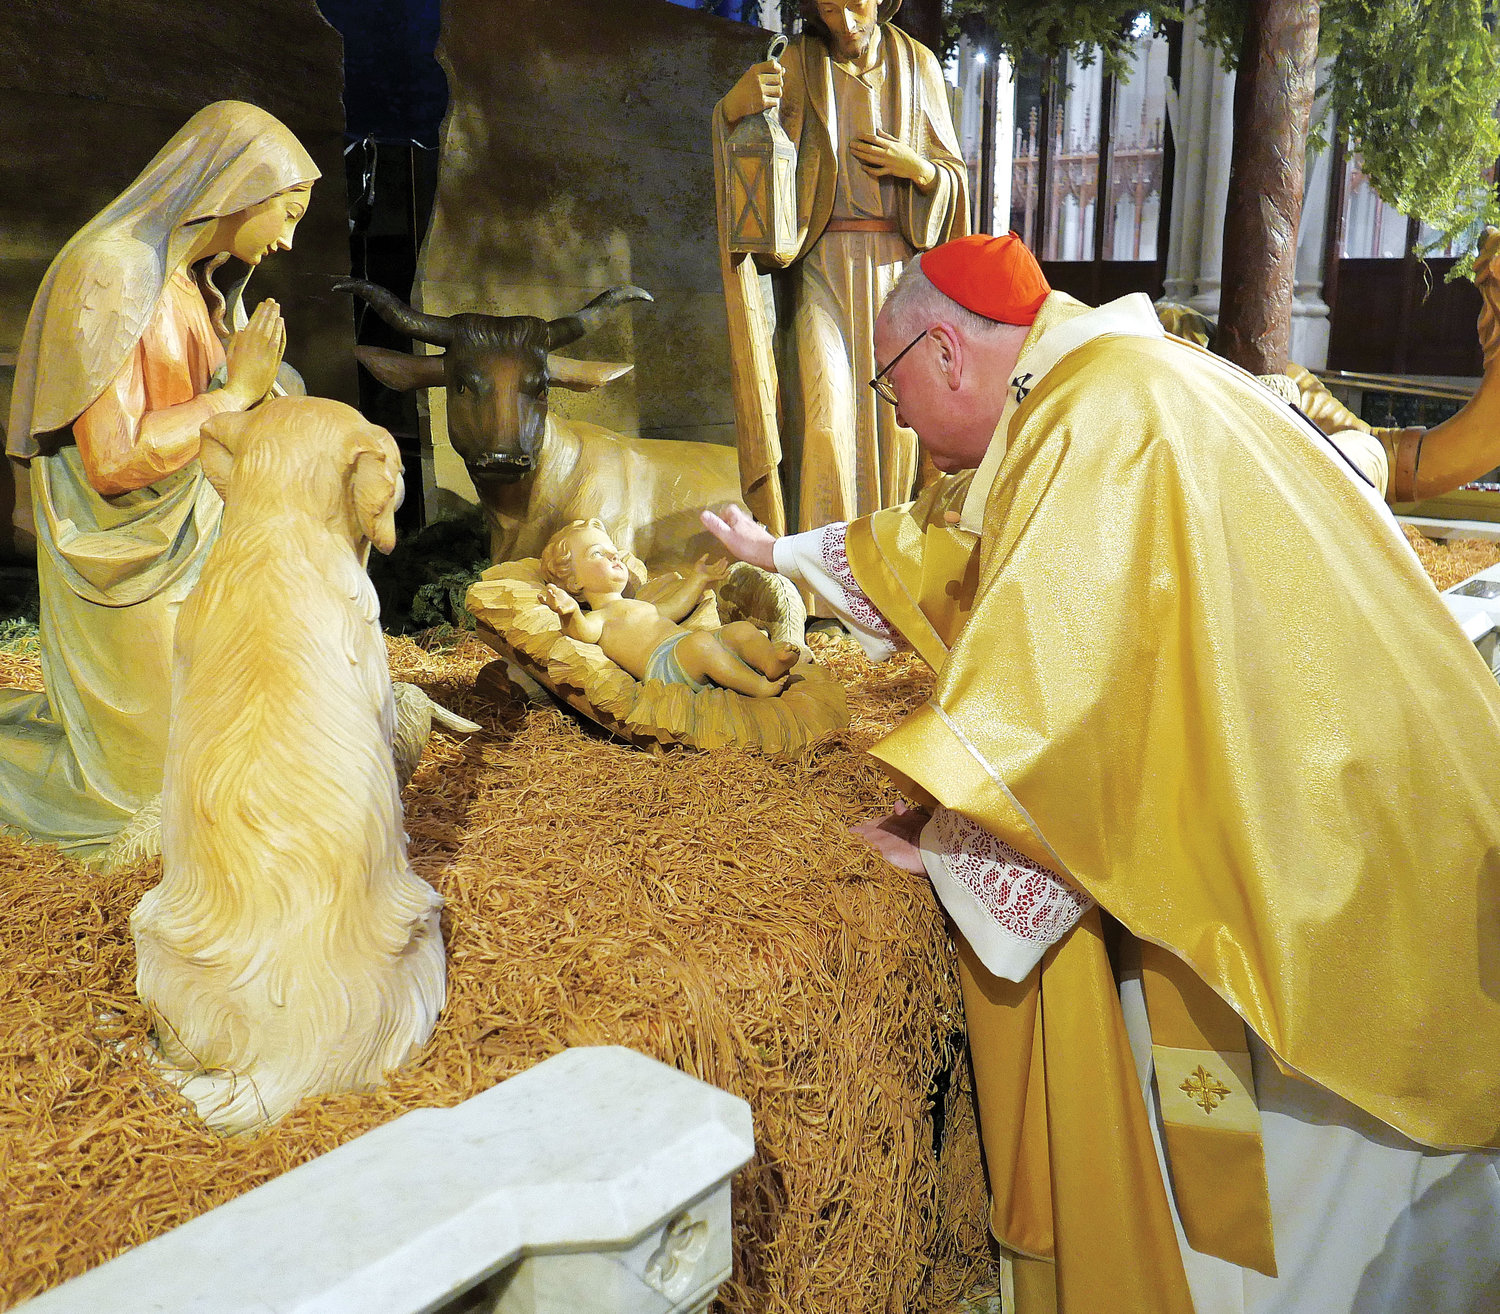 Cardinal Dolan gently places the figure of the baby Jesus in the crèche at the beginning of Christmas Midnight Mass at St. Patrick's Cathedral in Manhattan Dec. 25.